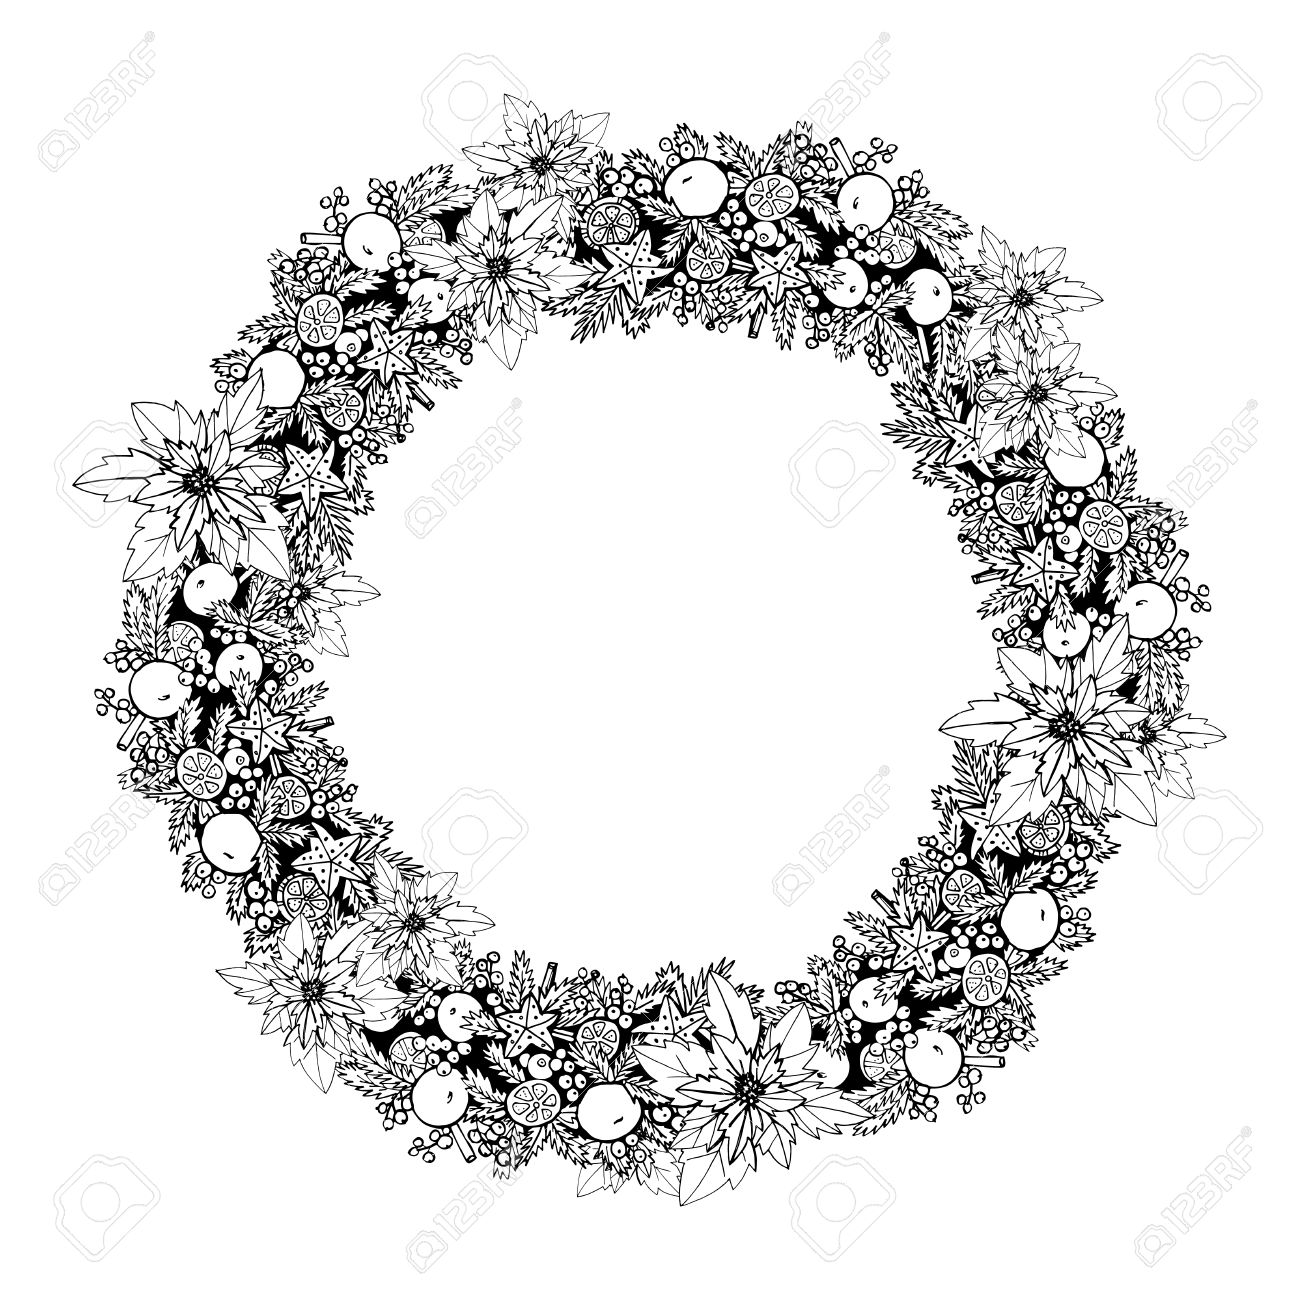 black and white christmas holiday decoration wreath frame vector illustration stock vector 45347916 - Wreath Frame